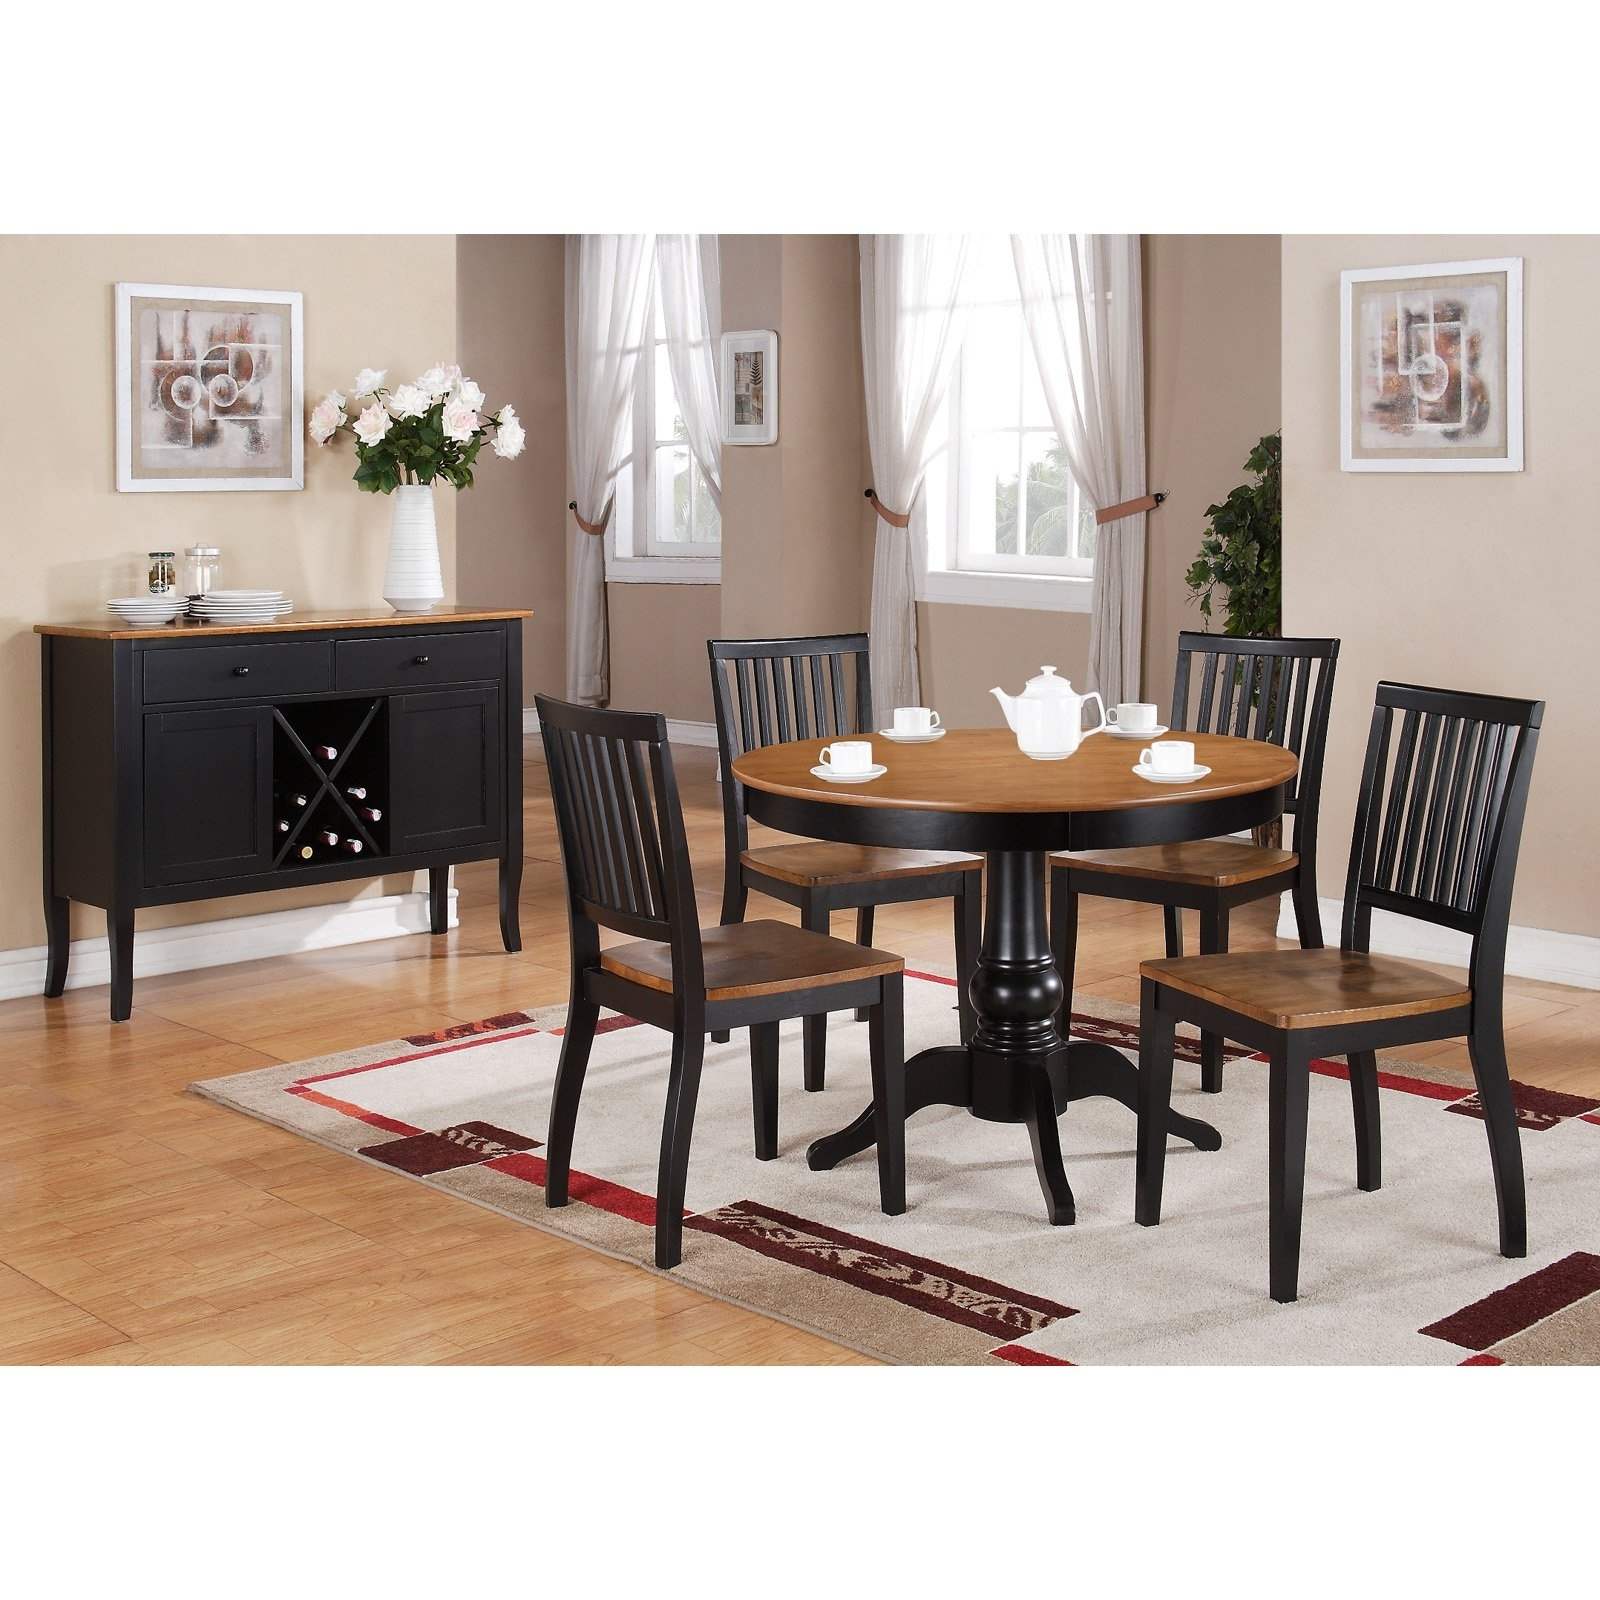 Candice Ii 5 Piece Round Dining Sets With Slat Back Side Chairs Inside Fashionable Steve Silver 5 Piece Candice Two Tone Round Pedestal Dining Table (View 2 of 25)